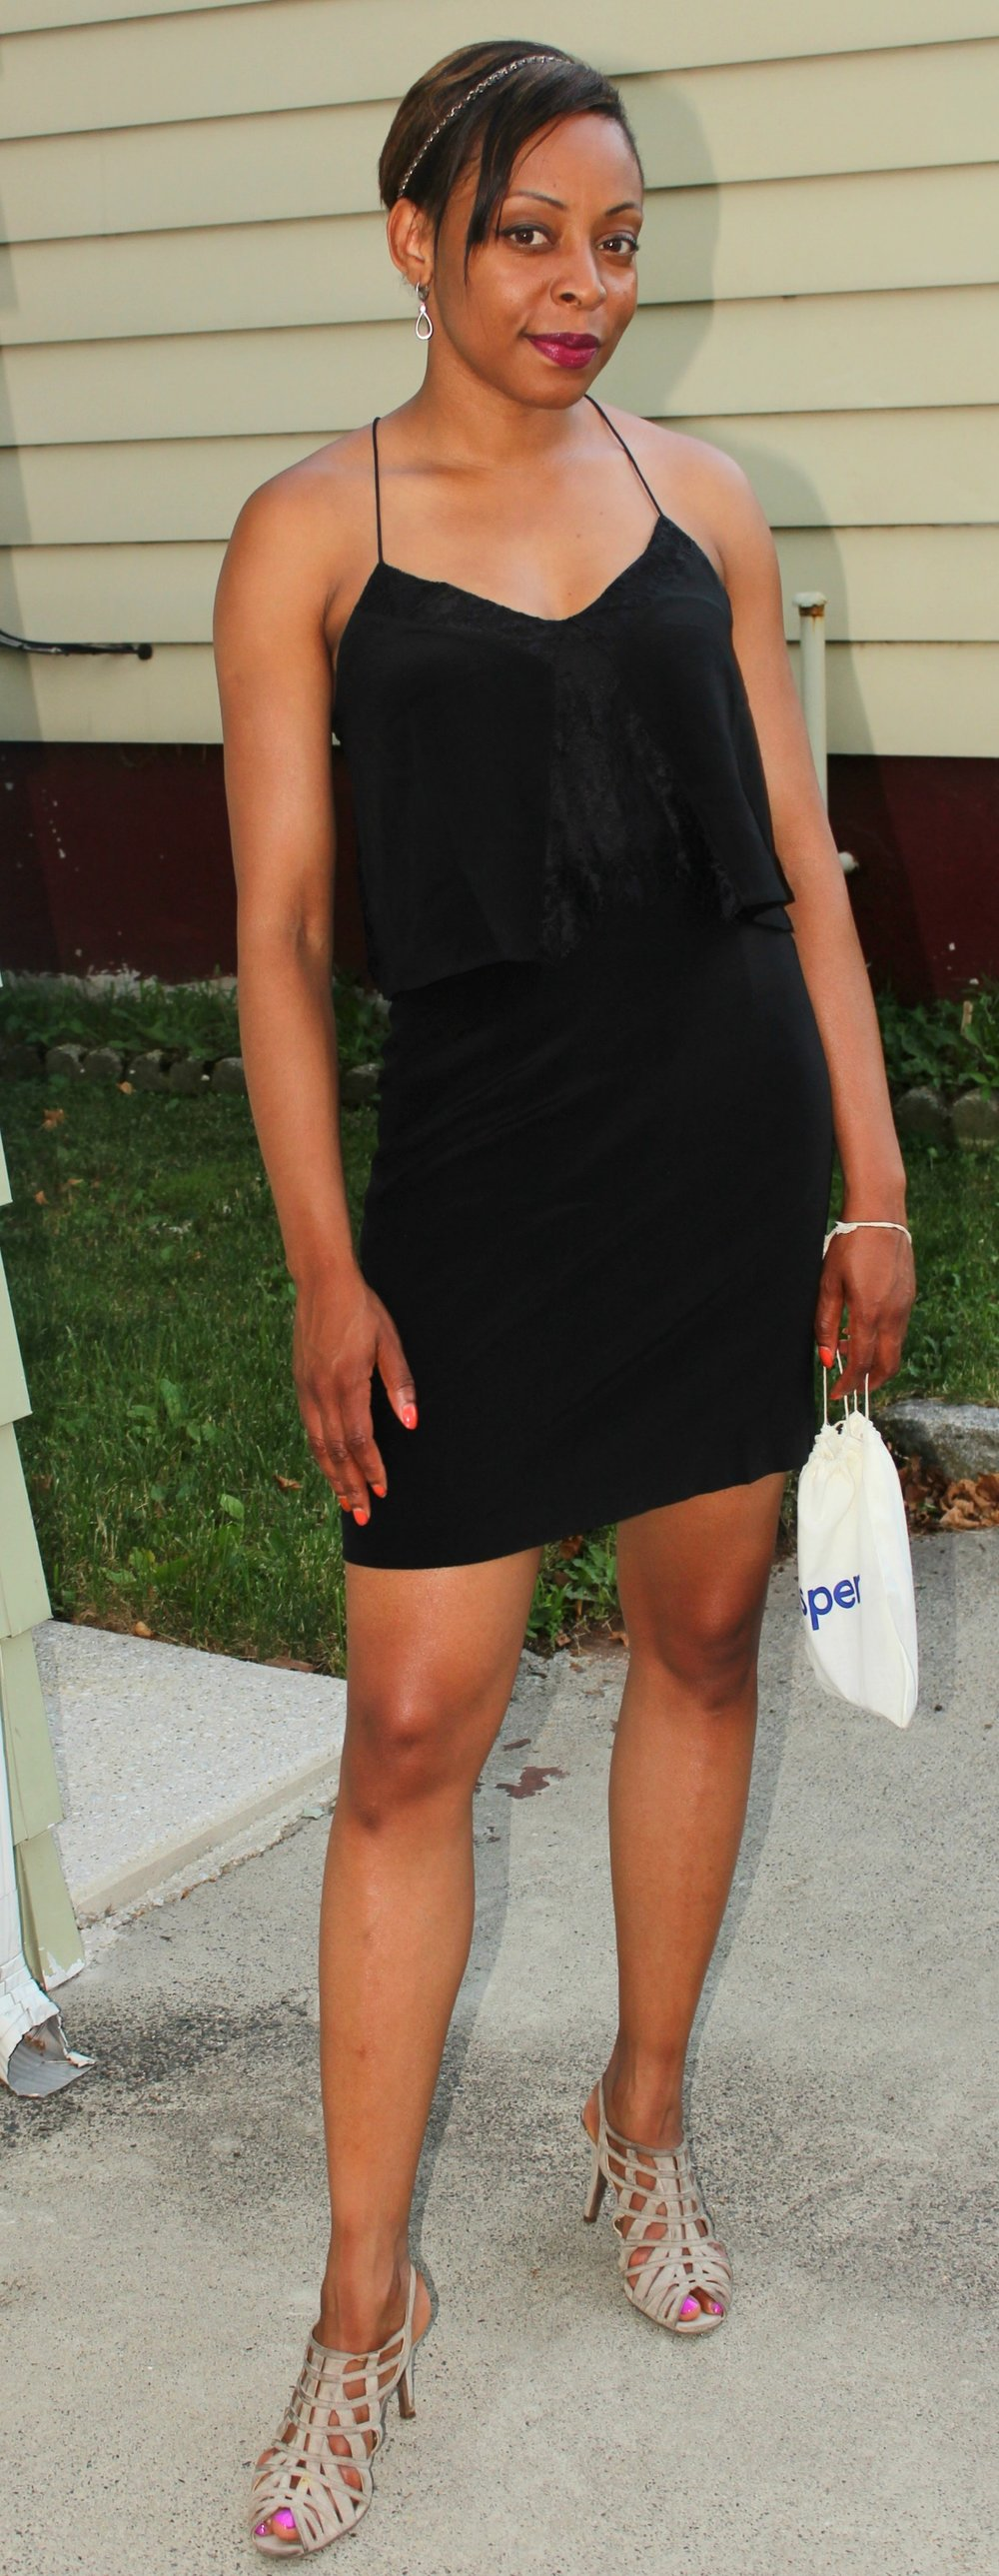 Below I'm sharing a few little black dresses that I believe are both chic and stylish for summer. Click on the images below to purchase. Enjoy!!!